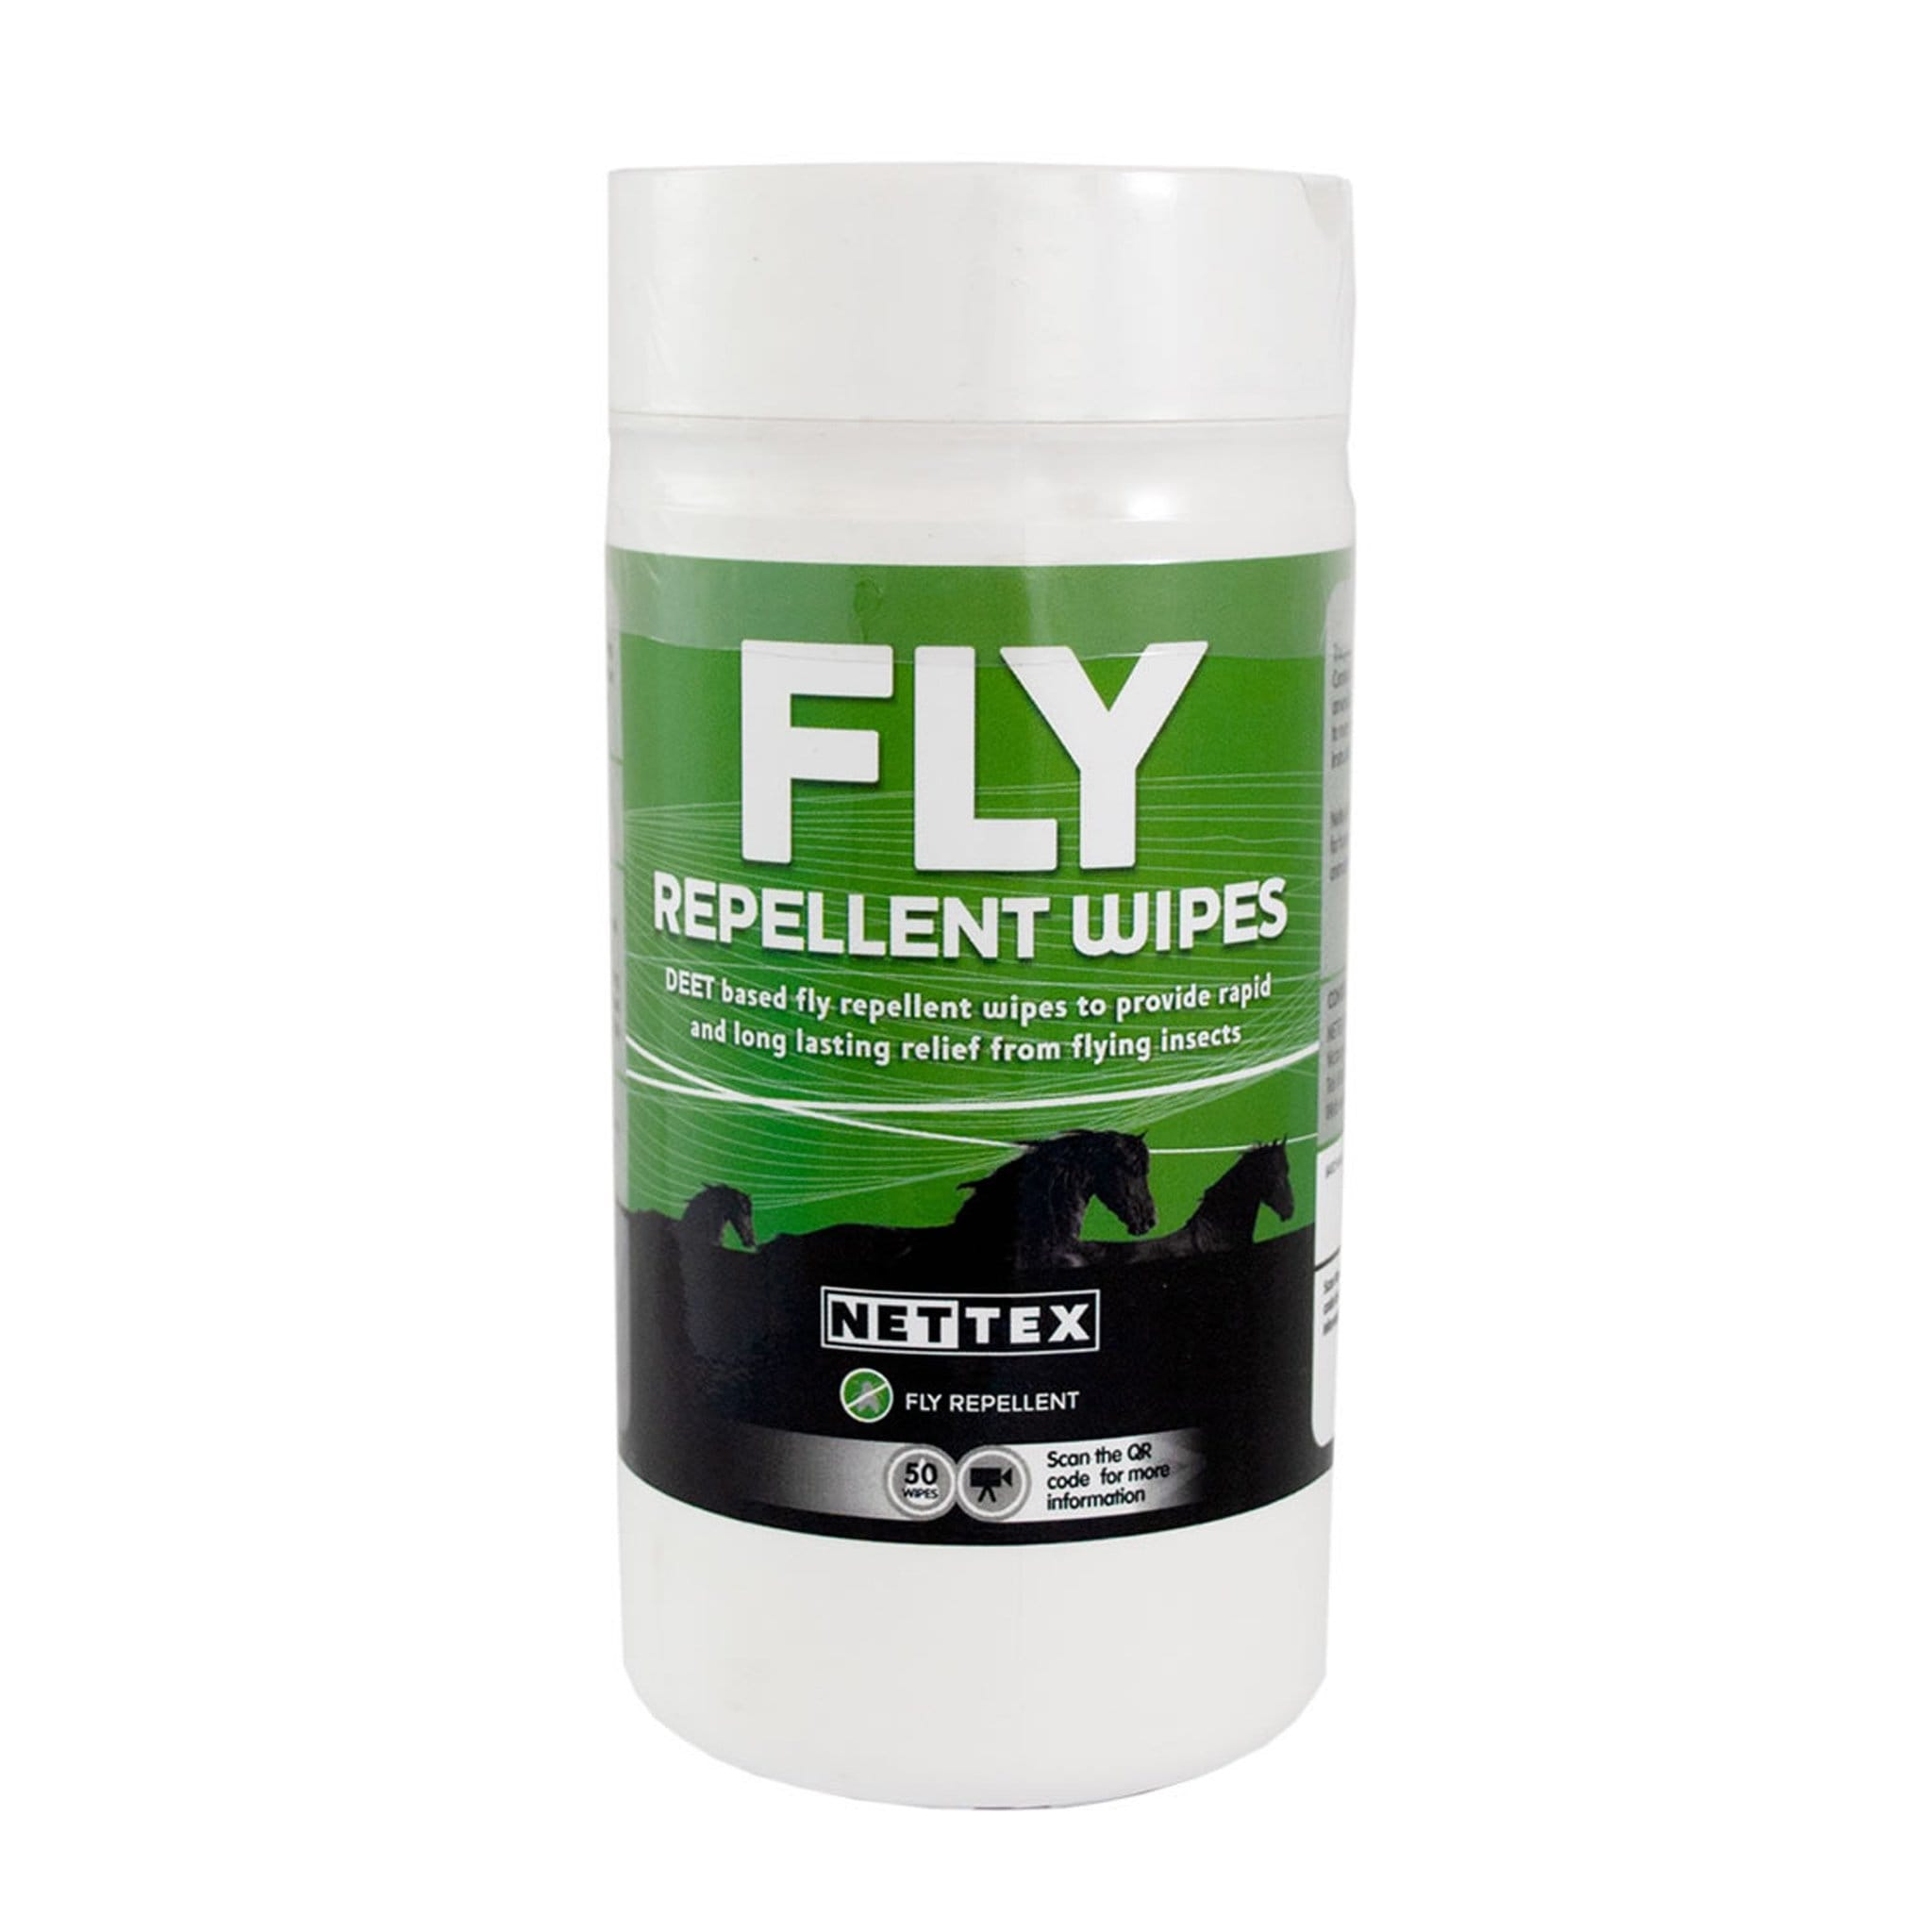 Nettex Equine Fly Repellent Wipes 50 Pack NET0070.